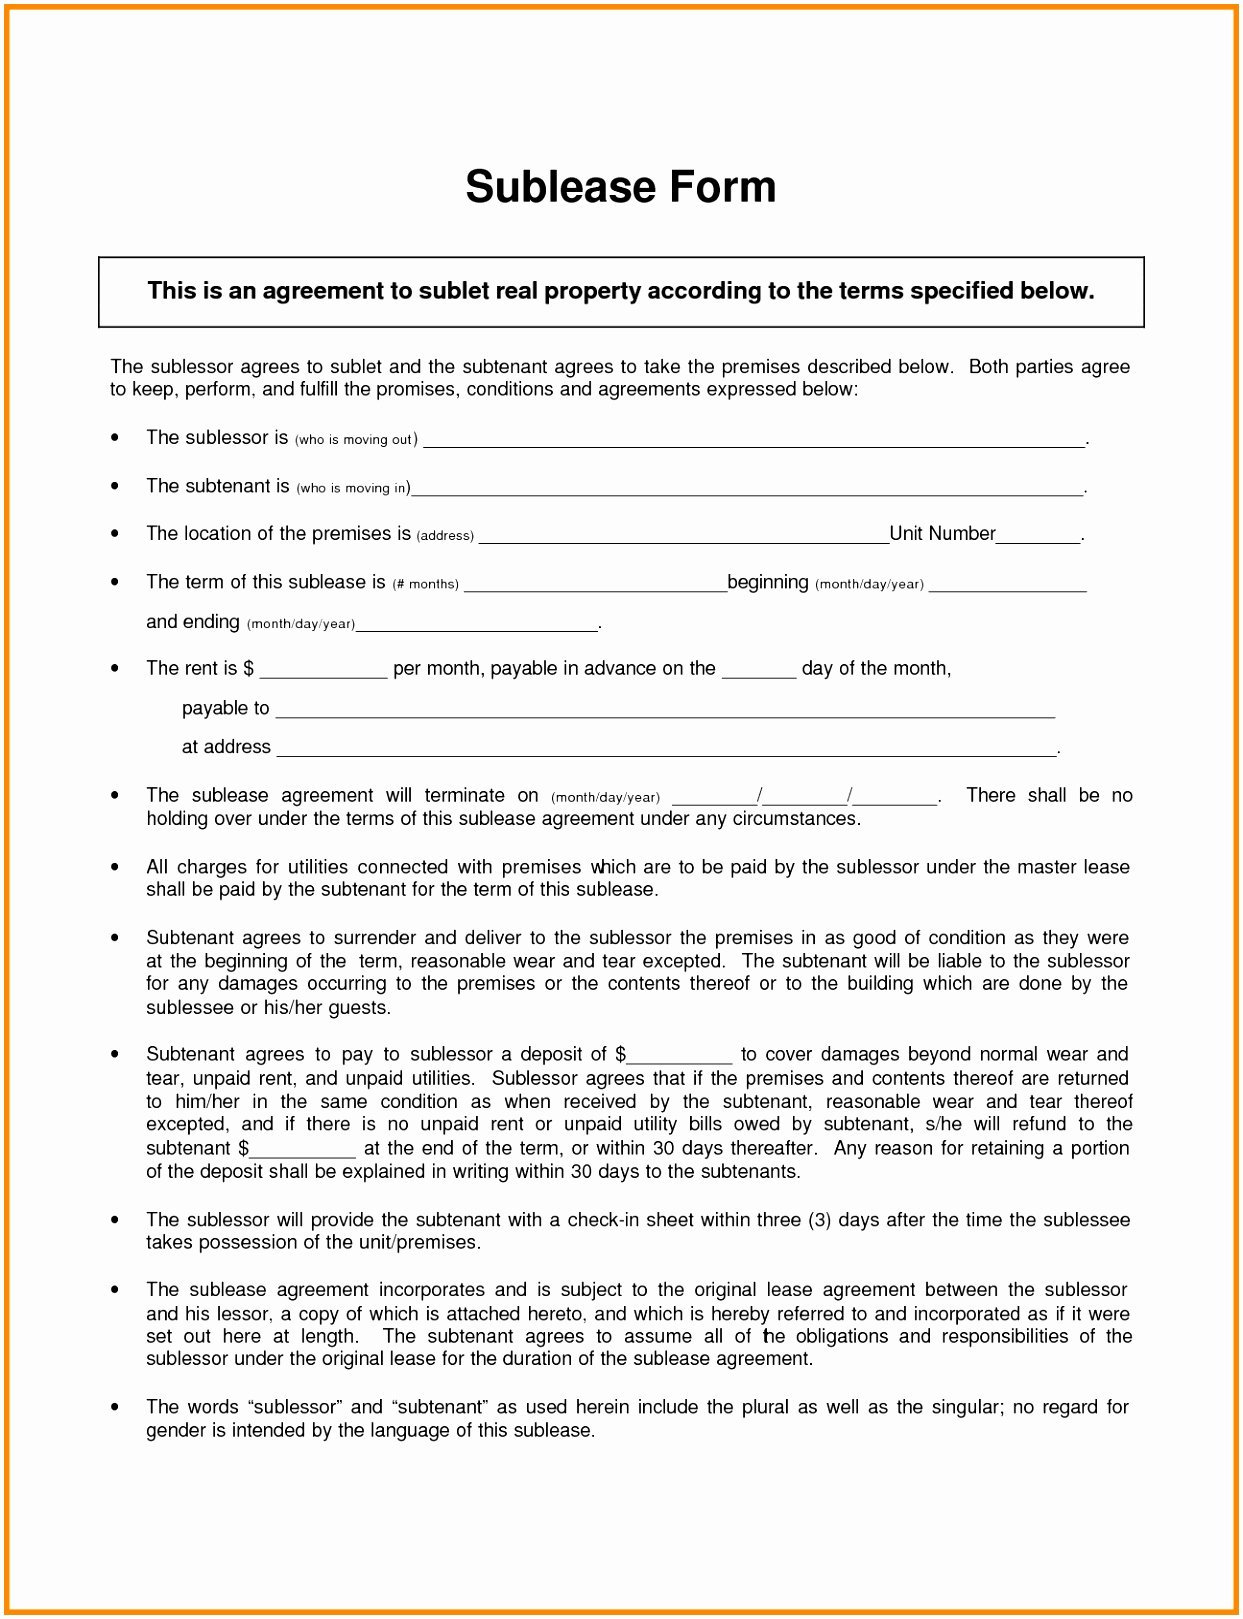 Master Lease Agreement Template Awesome 9 Master Lease Agreement Template Owaip